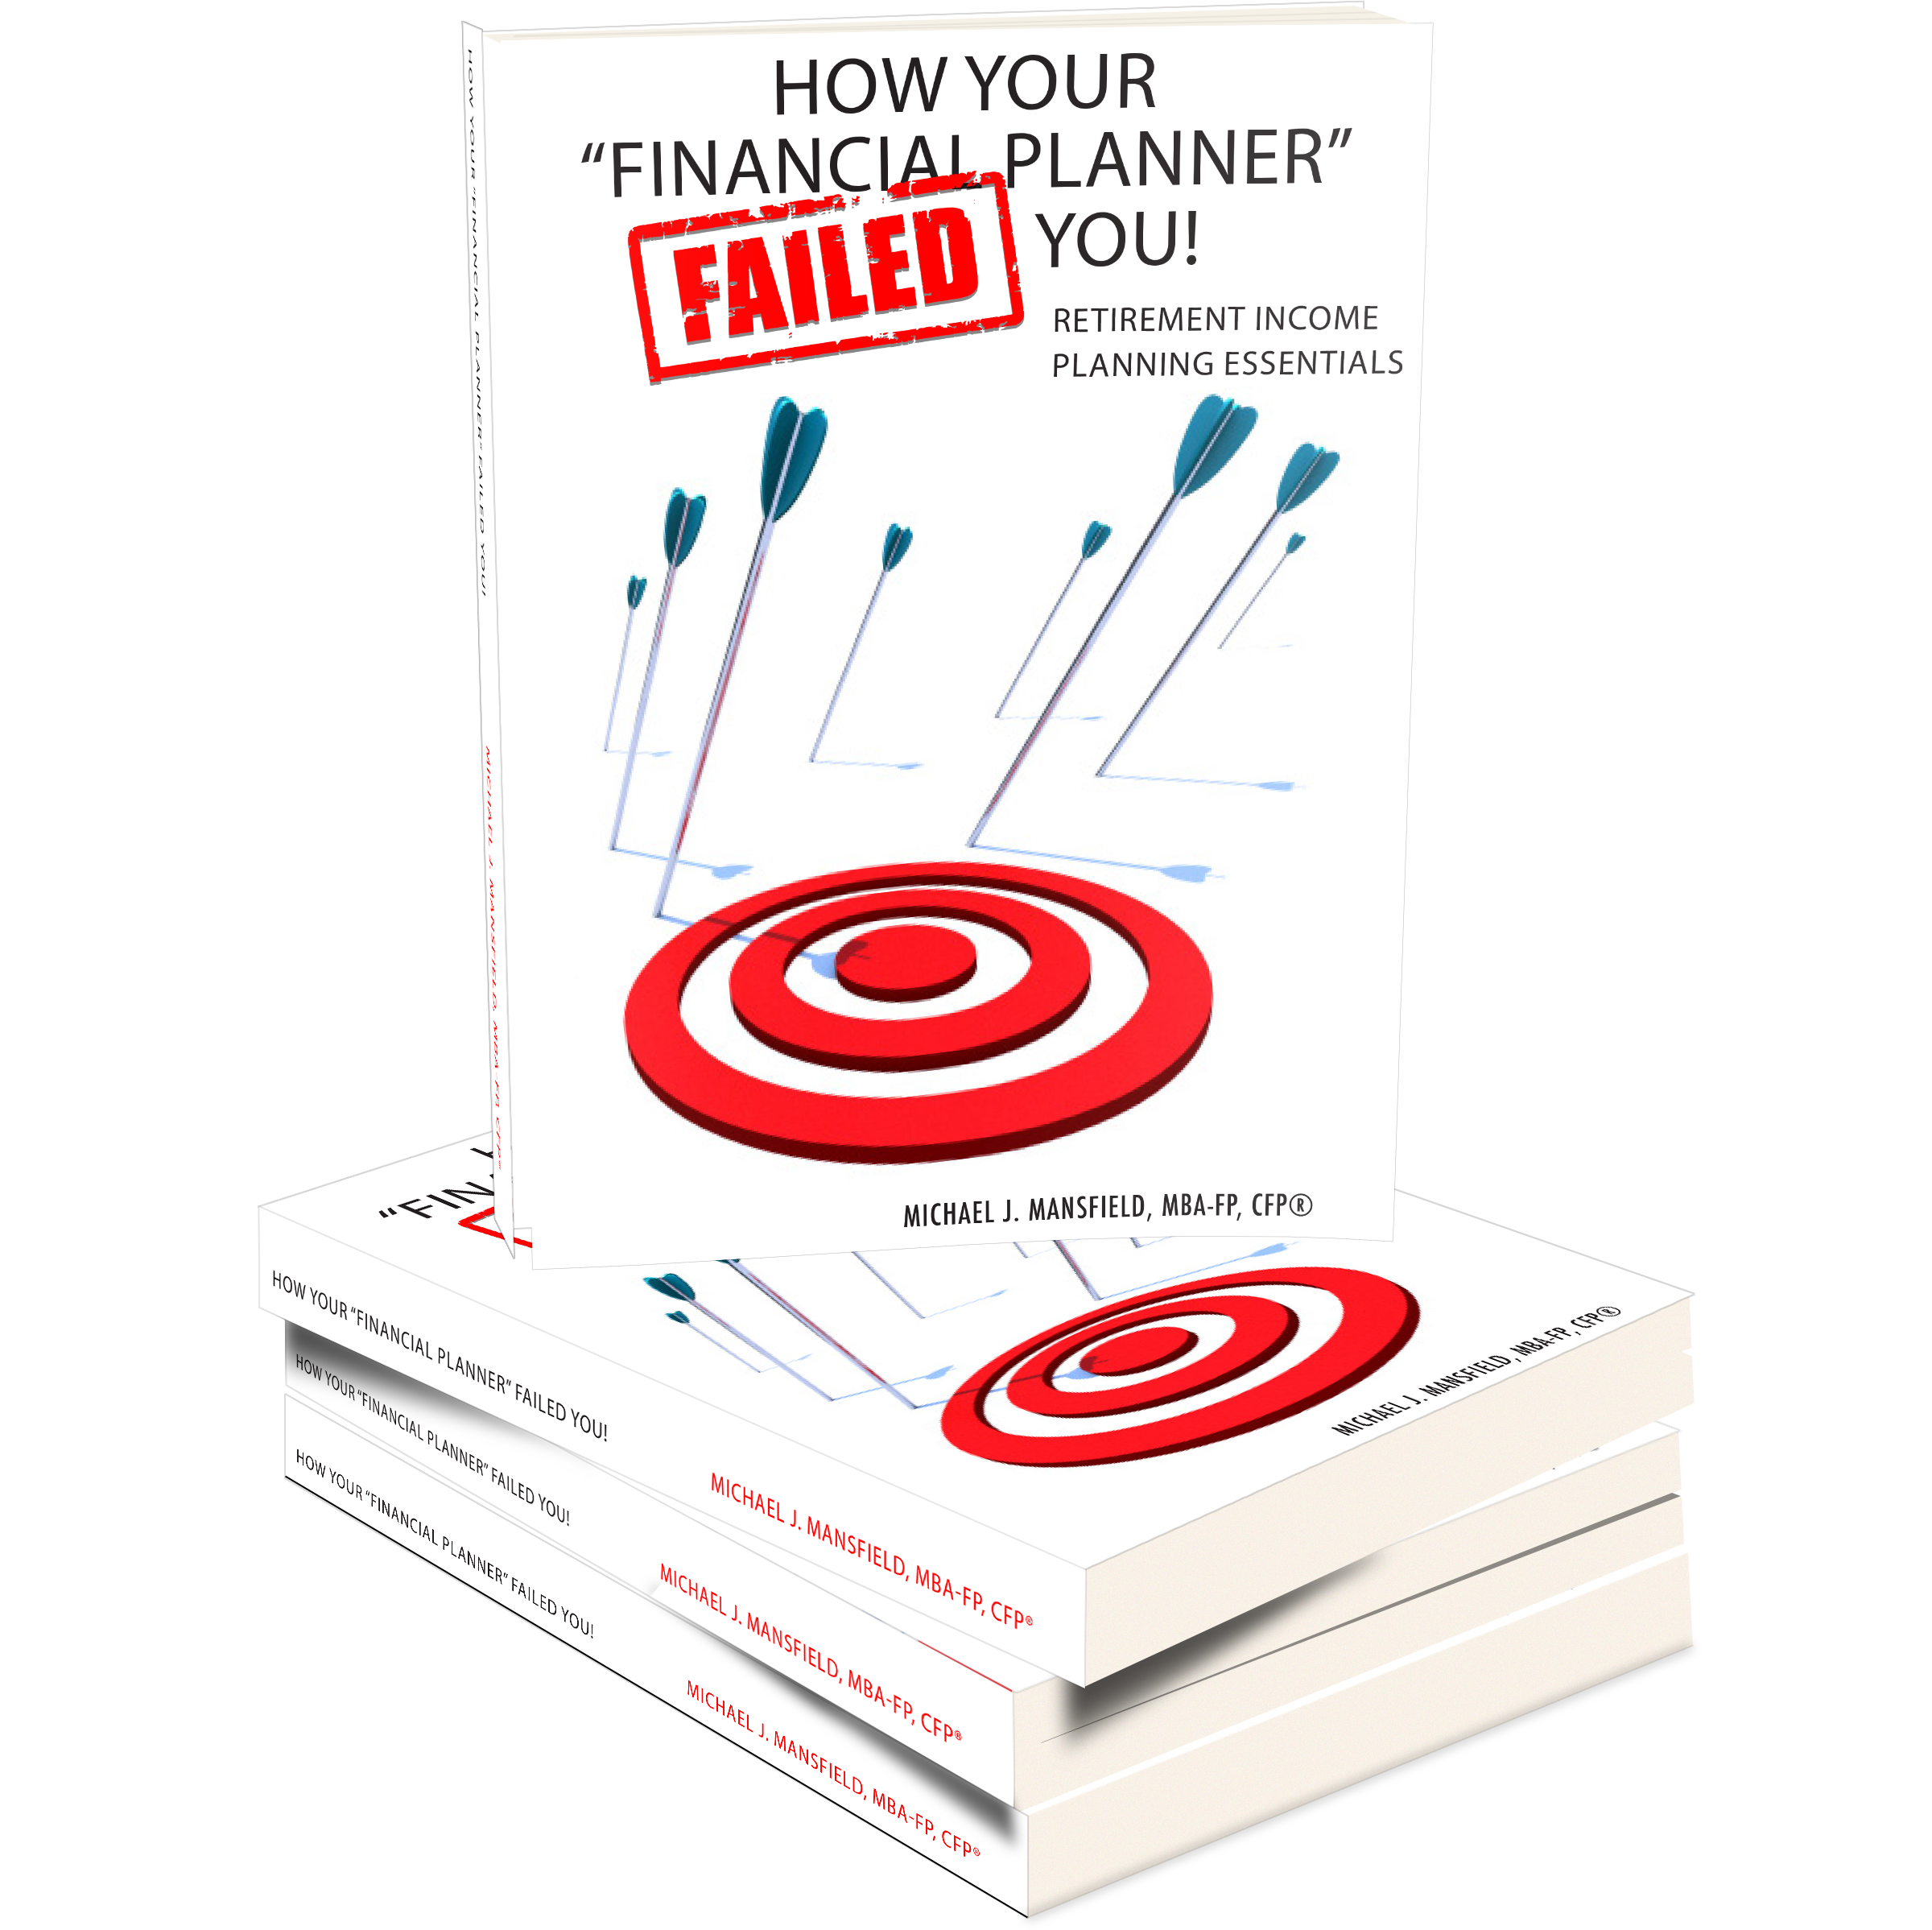 How Your Financial Planner Failed You